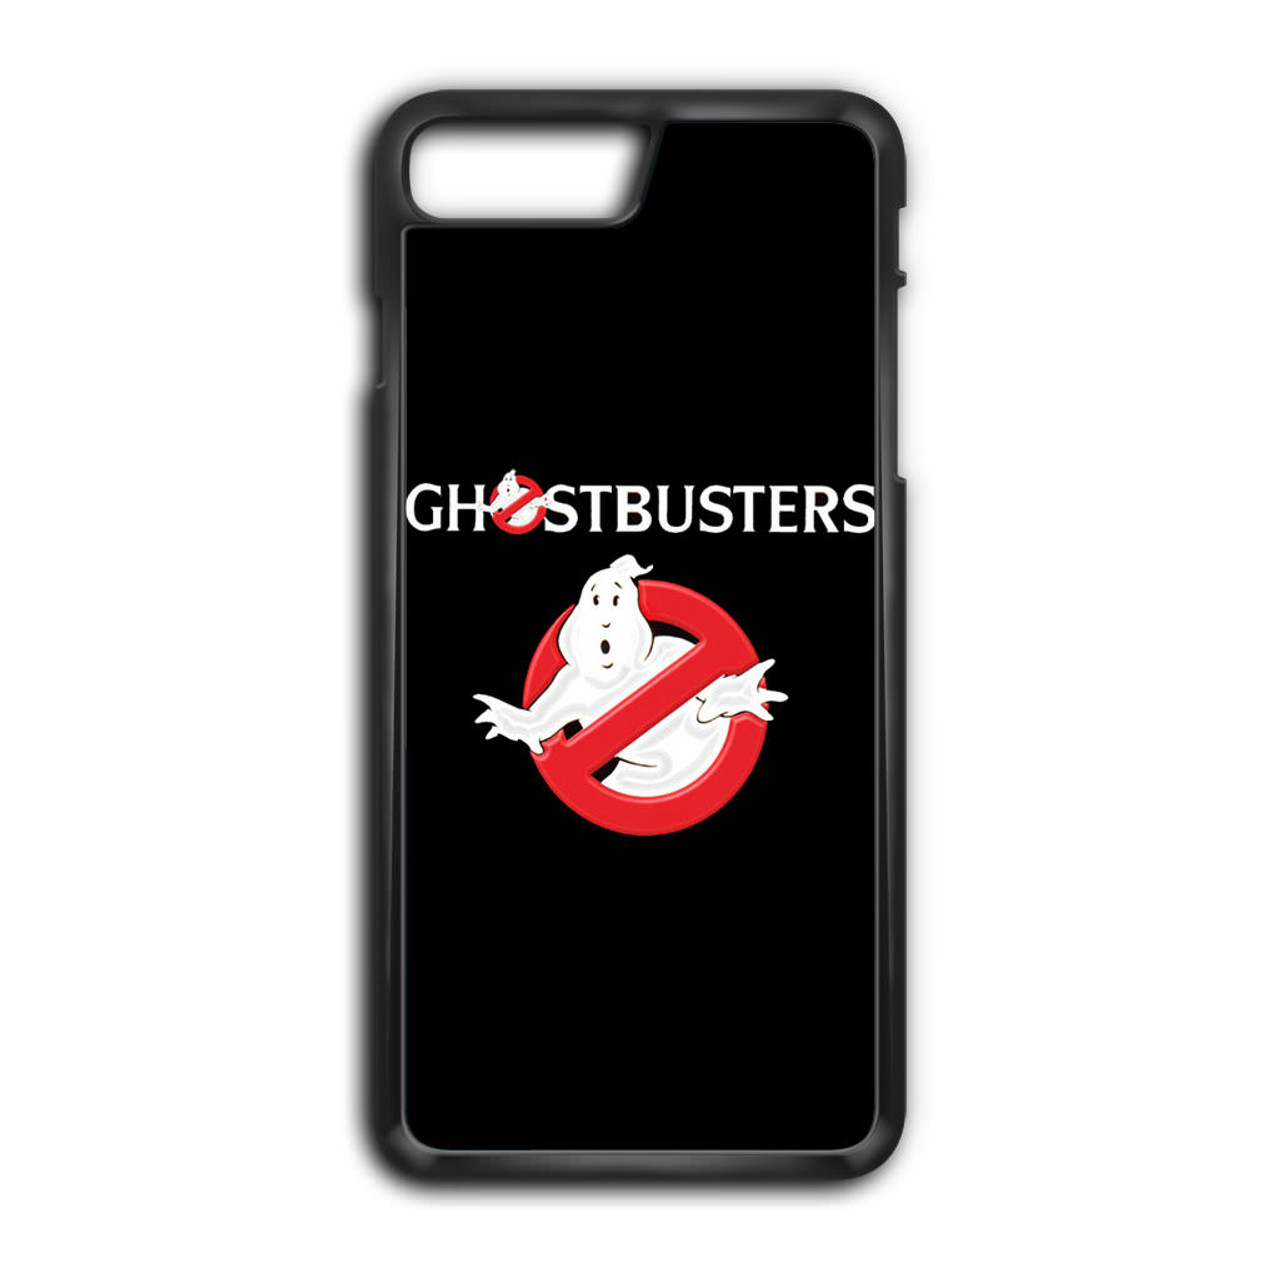 ghostbusters iphone 8 case